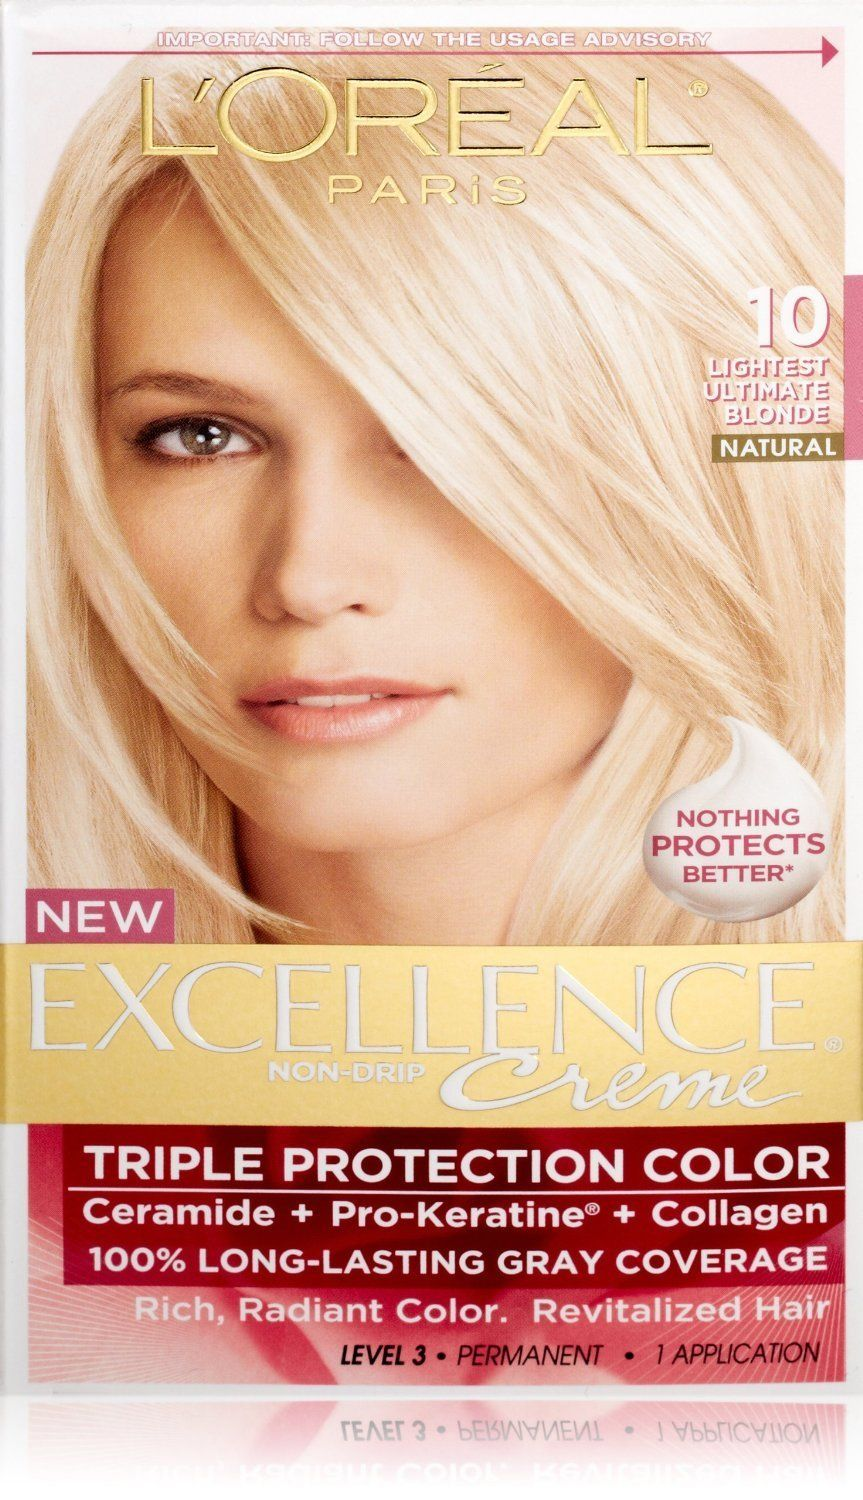 L Oreal Excellence Creme Haircolor Lightest Ultimate Blonde 10 1 Ea This Is An Amazon Affiliate Link Deta Grey Hair Coverage Loreal Hair Color Hair Color